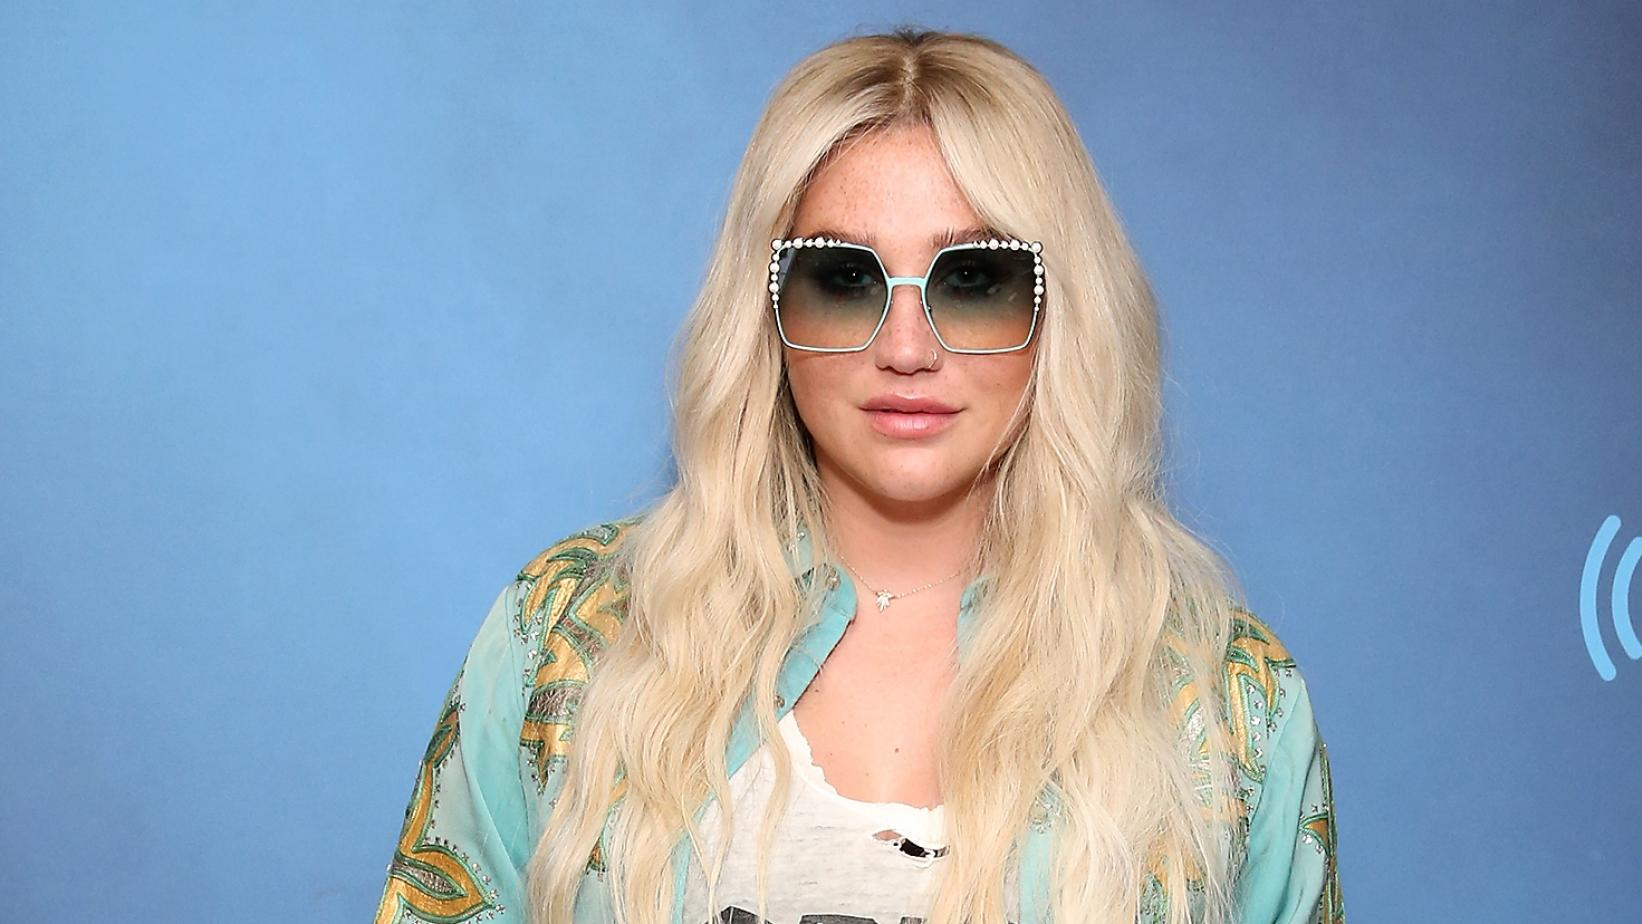 Kesha photographed in New York in 2017